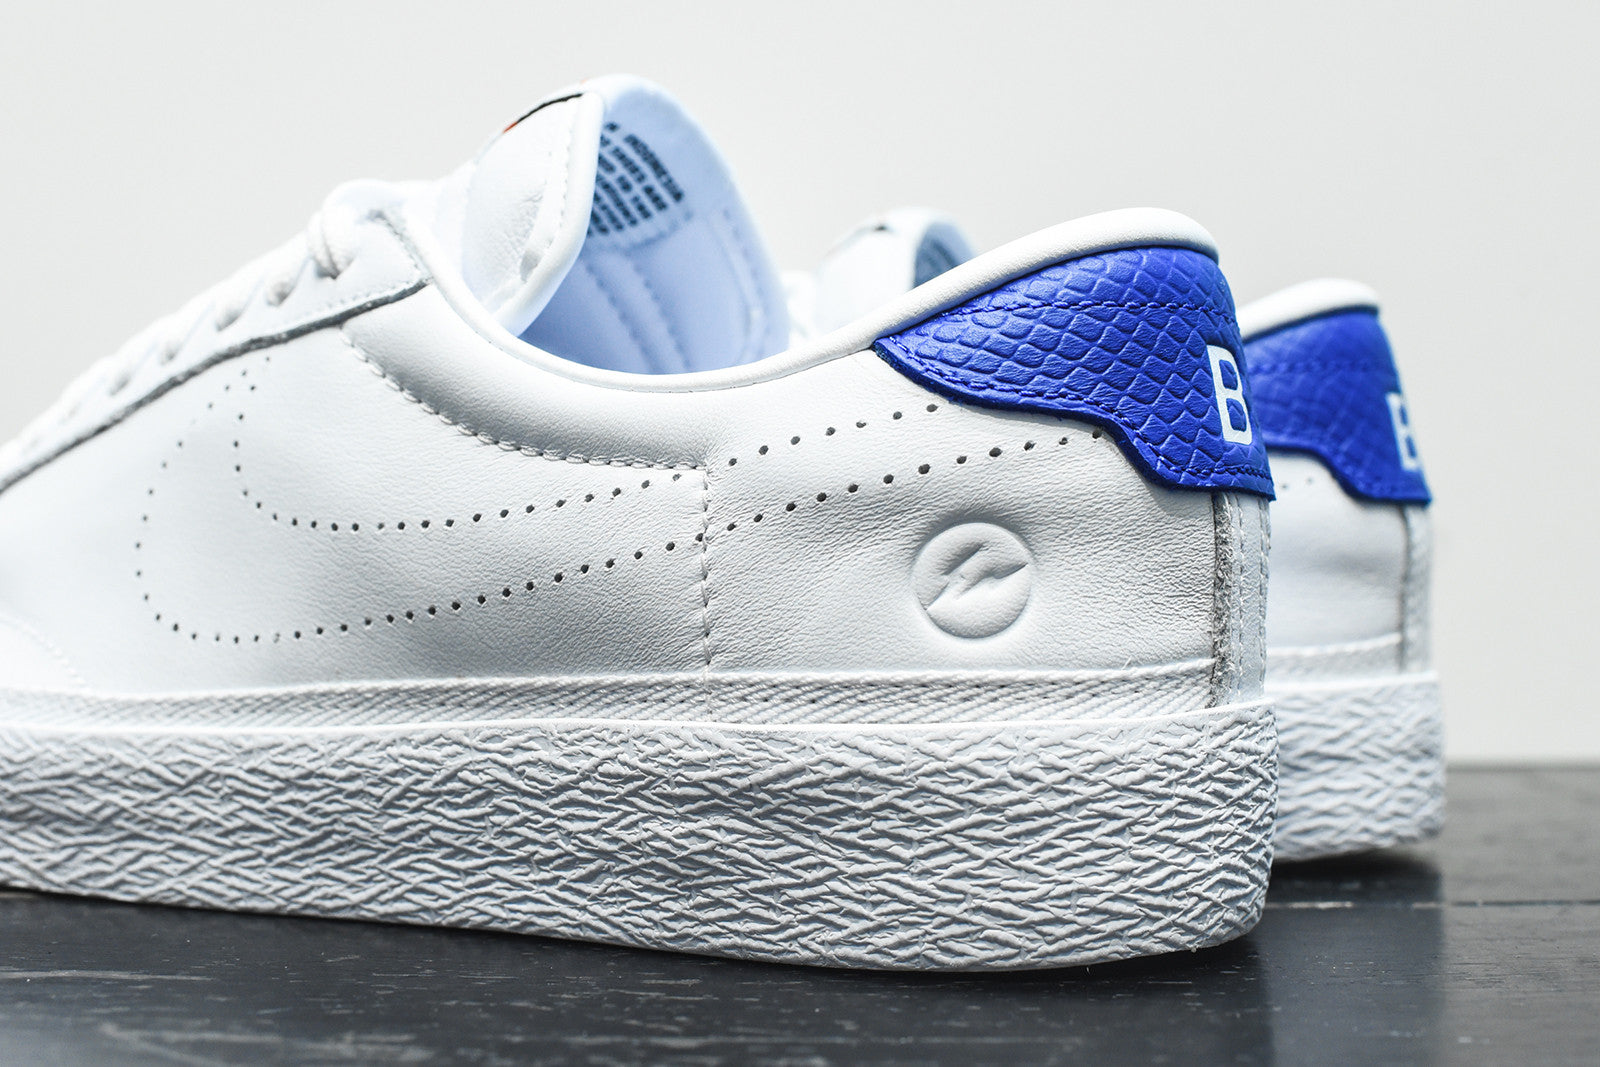 Nike x Fragment Design Air Zoom Tennis Classic - White / Royal